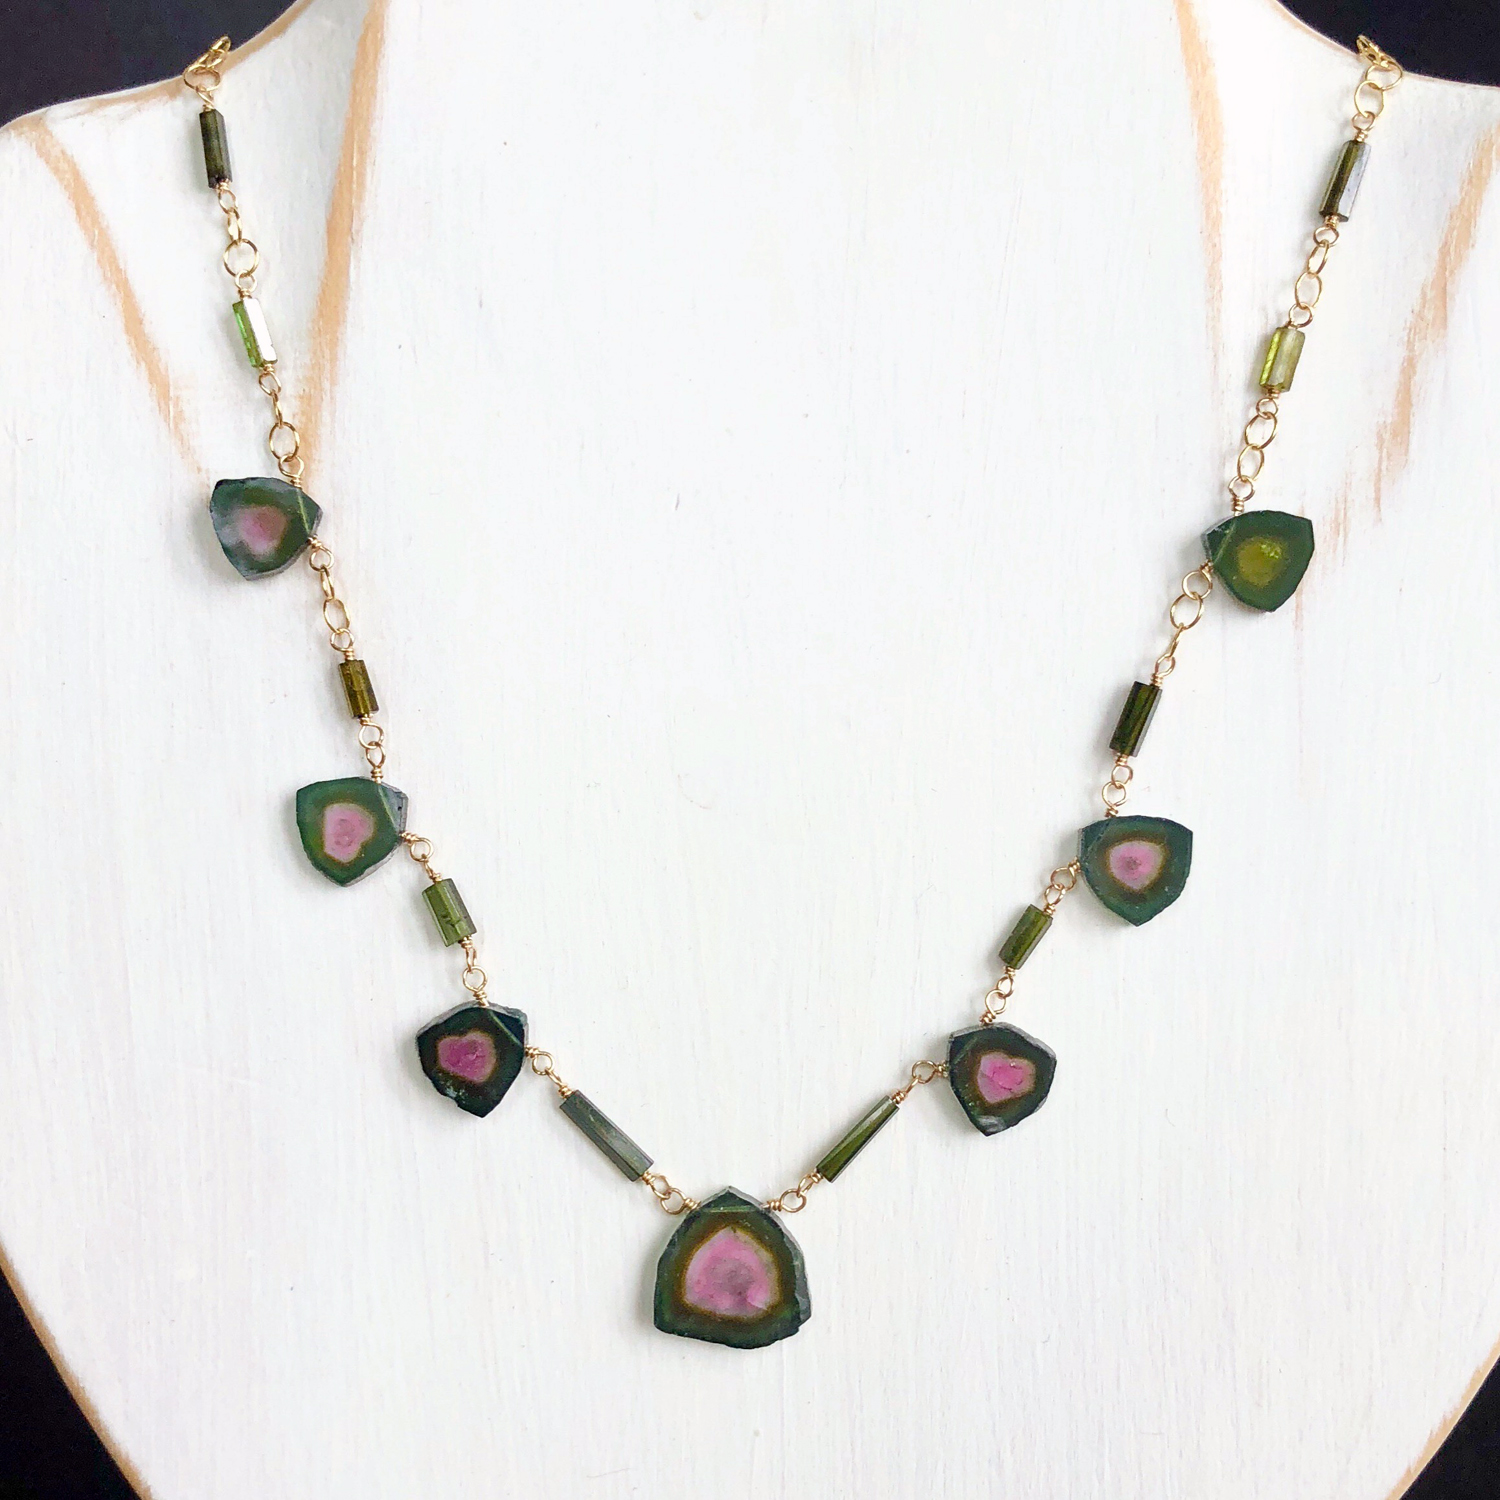 Watermelon Tourmaline Necklace Rainbow Tourmaline Smooth Oval Tourmaline Jewelry Multicolor Station Necklace FizzCandy Gift for Wife